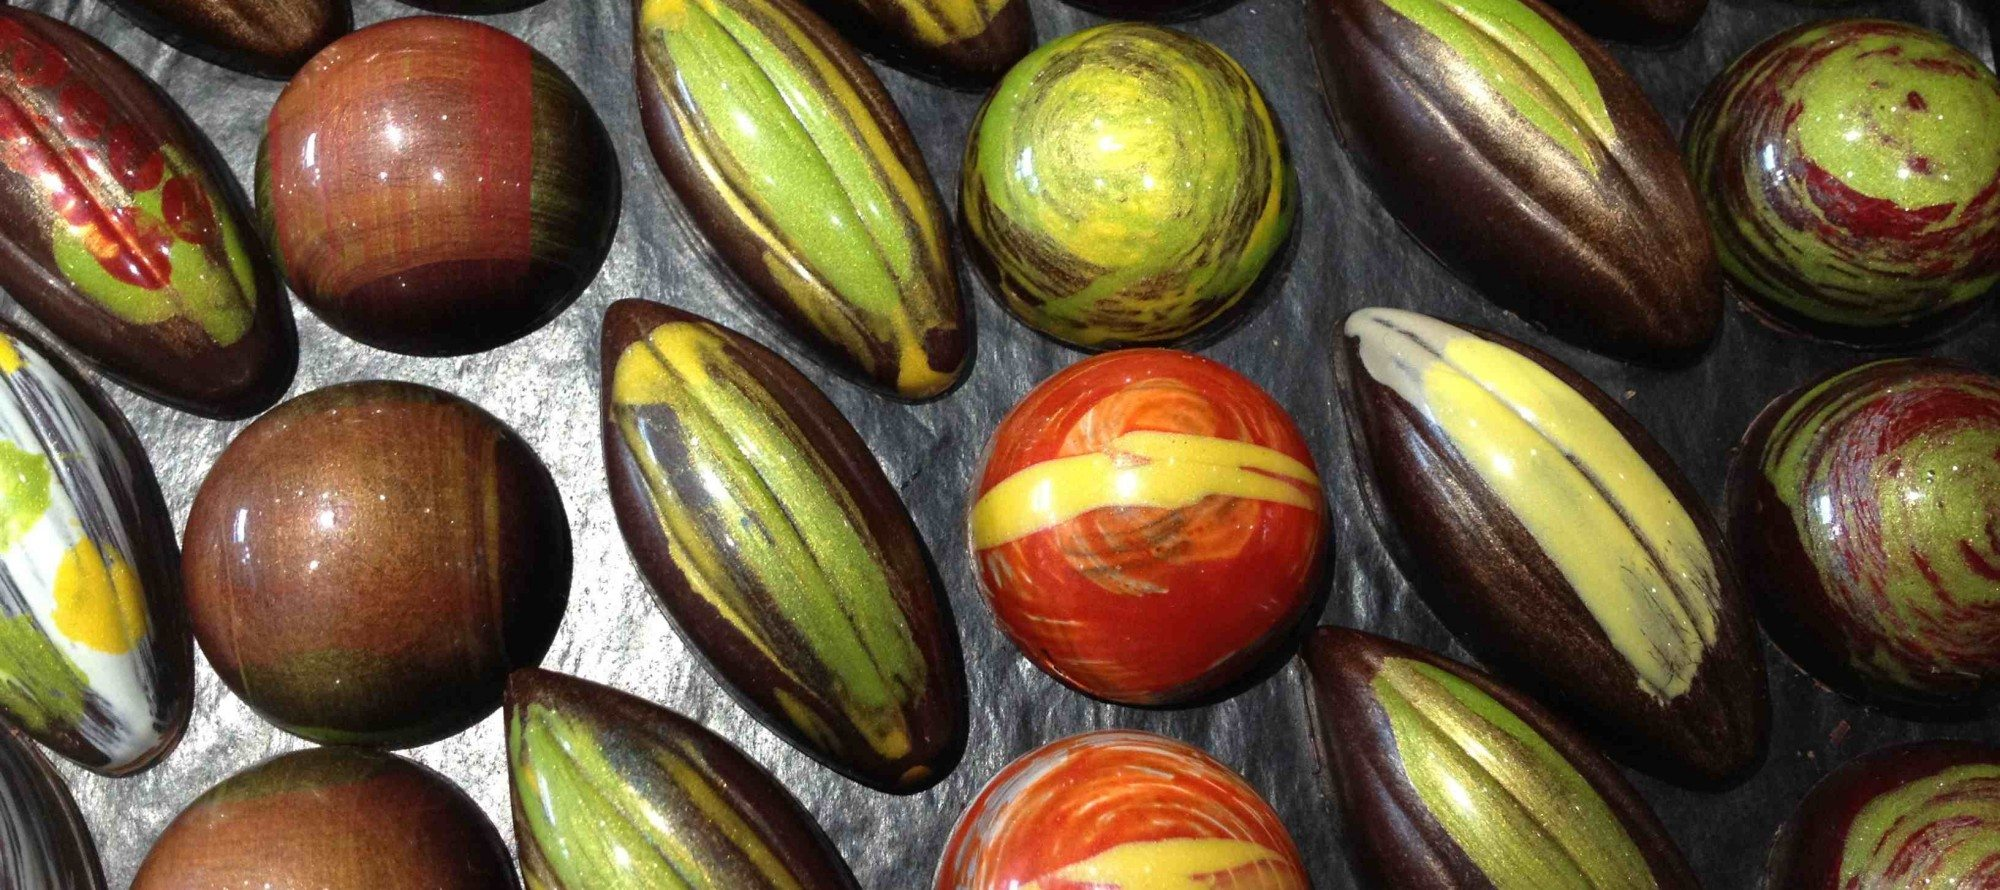 RECENTLY OPENED! Anne DesBrisay checks out Cylie Patisserie and Chocolaterie